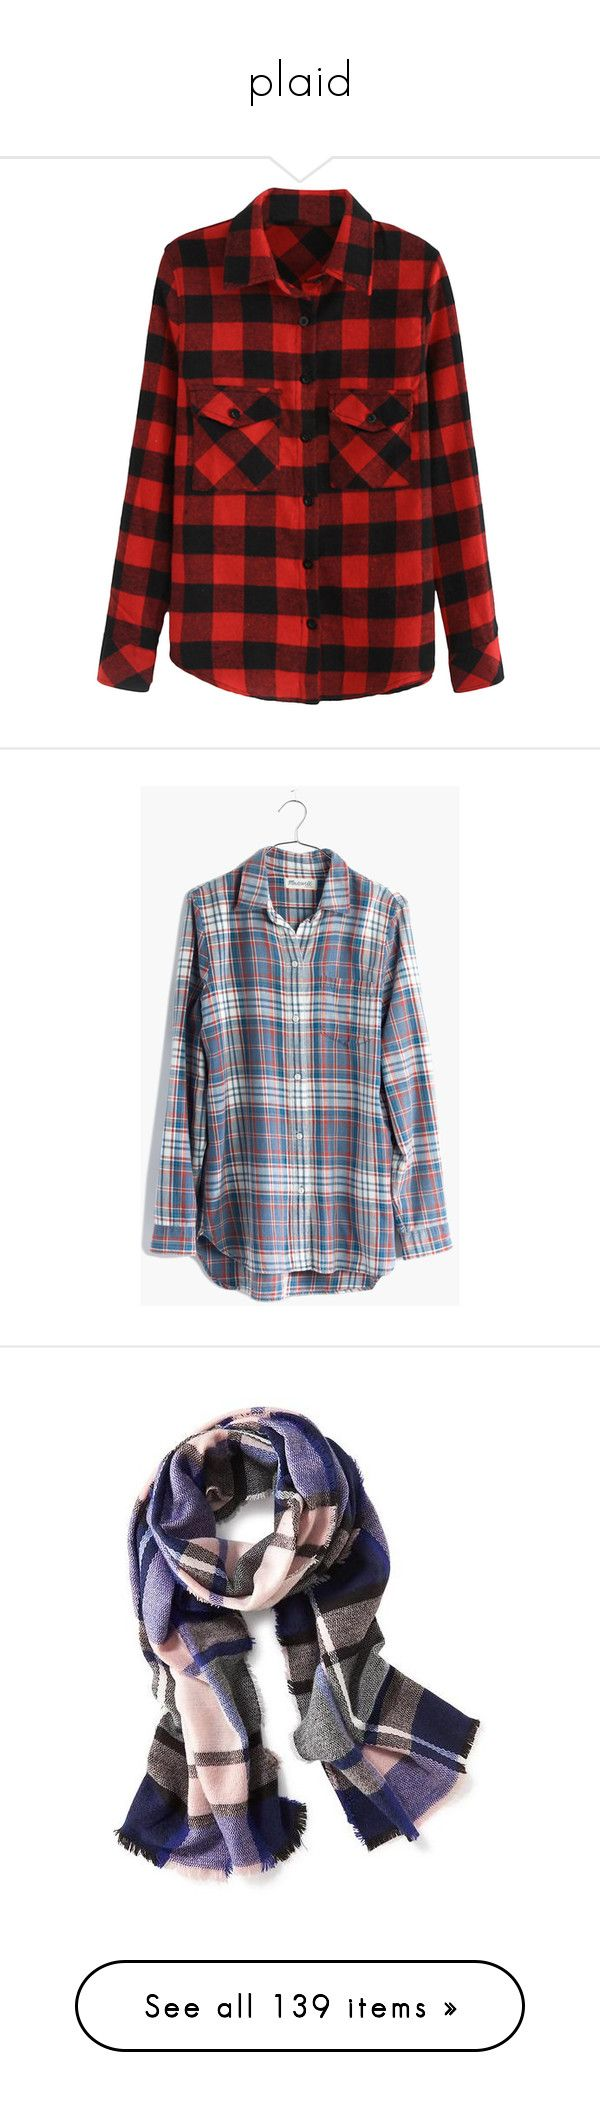 """plaid"" by sabina-127 ❤ liked on Polyvore featuring tops, shirts, flannels, plaid, long sleeve flannel shirts, plaid shirts, flannel shirts, red flannel shirt, red long sleeve shirt and button down shirt"